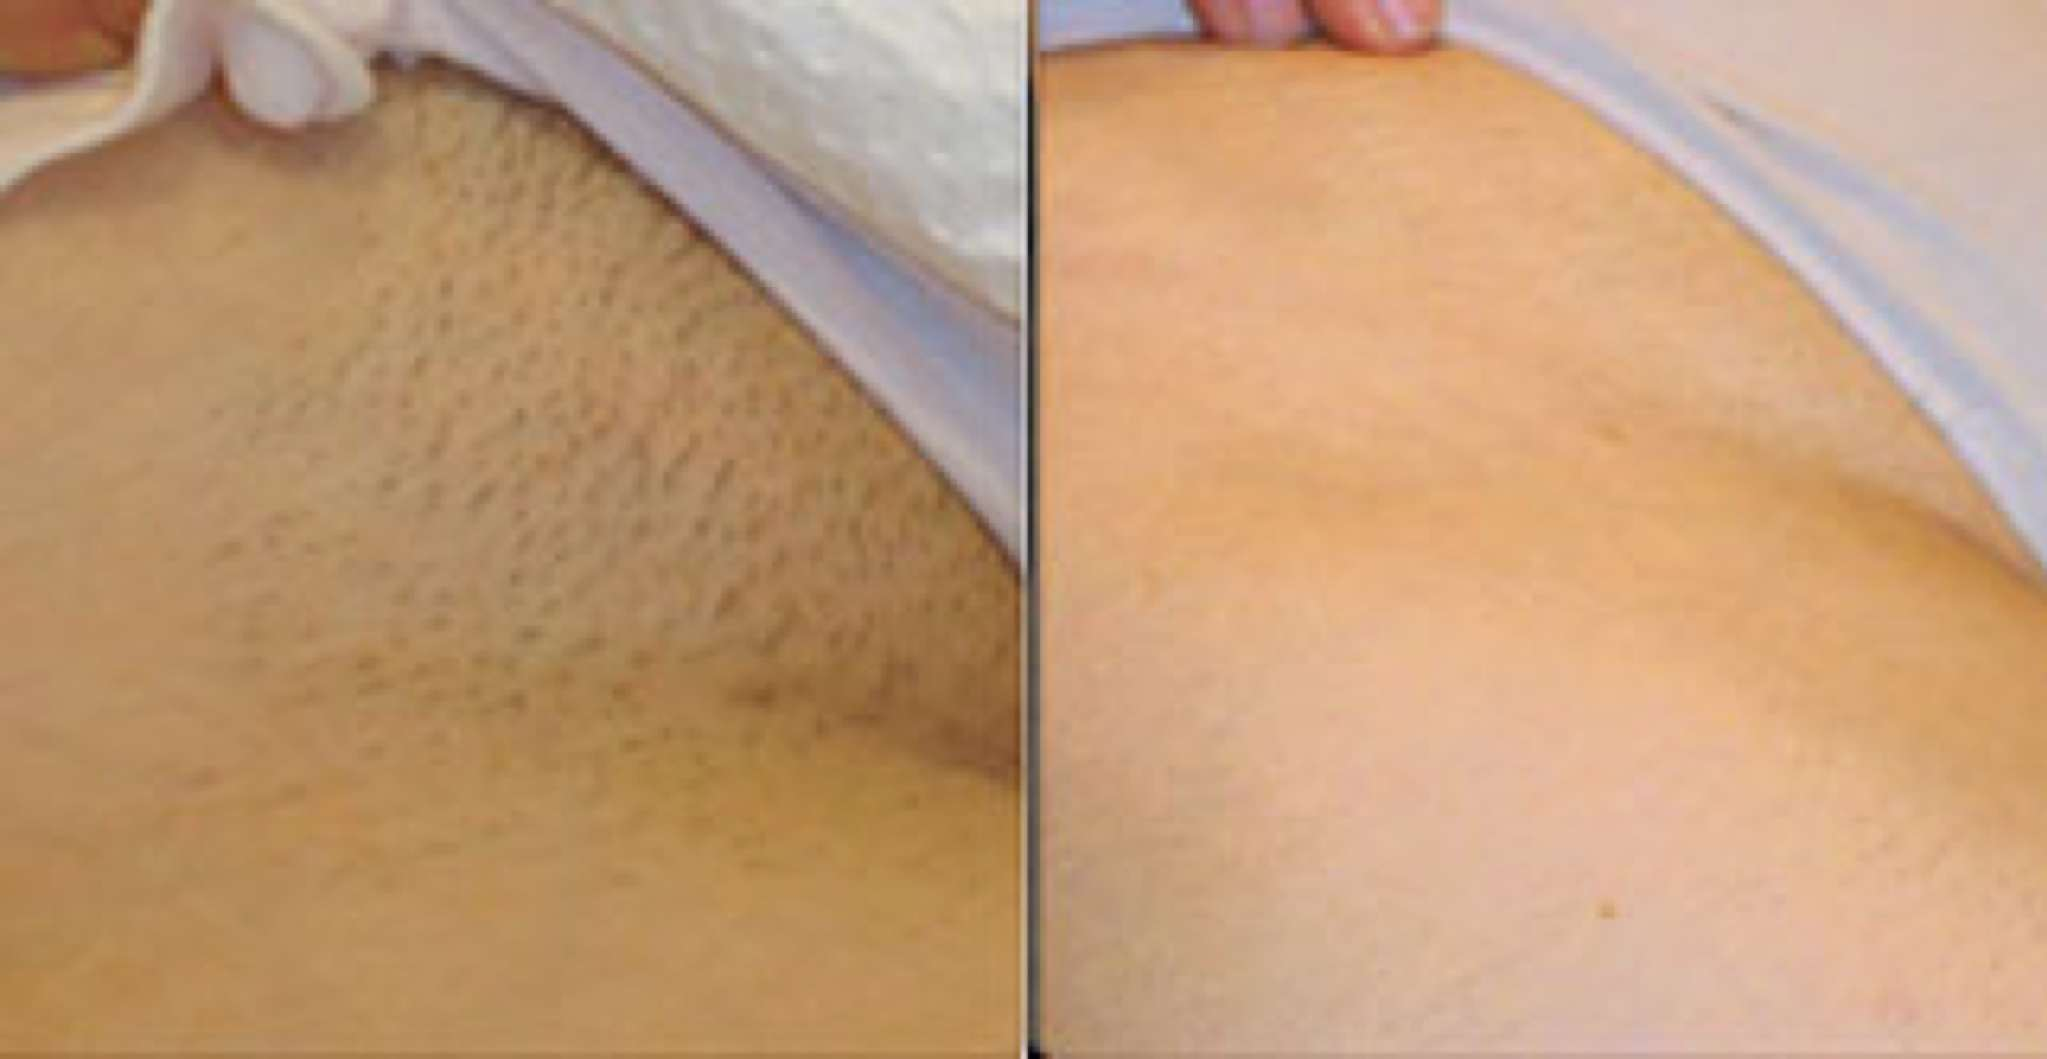 Buy After and Before full brazilian wax picture trends